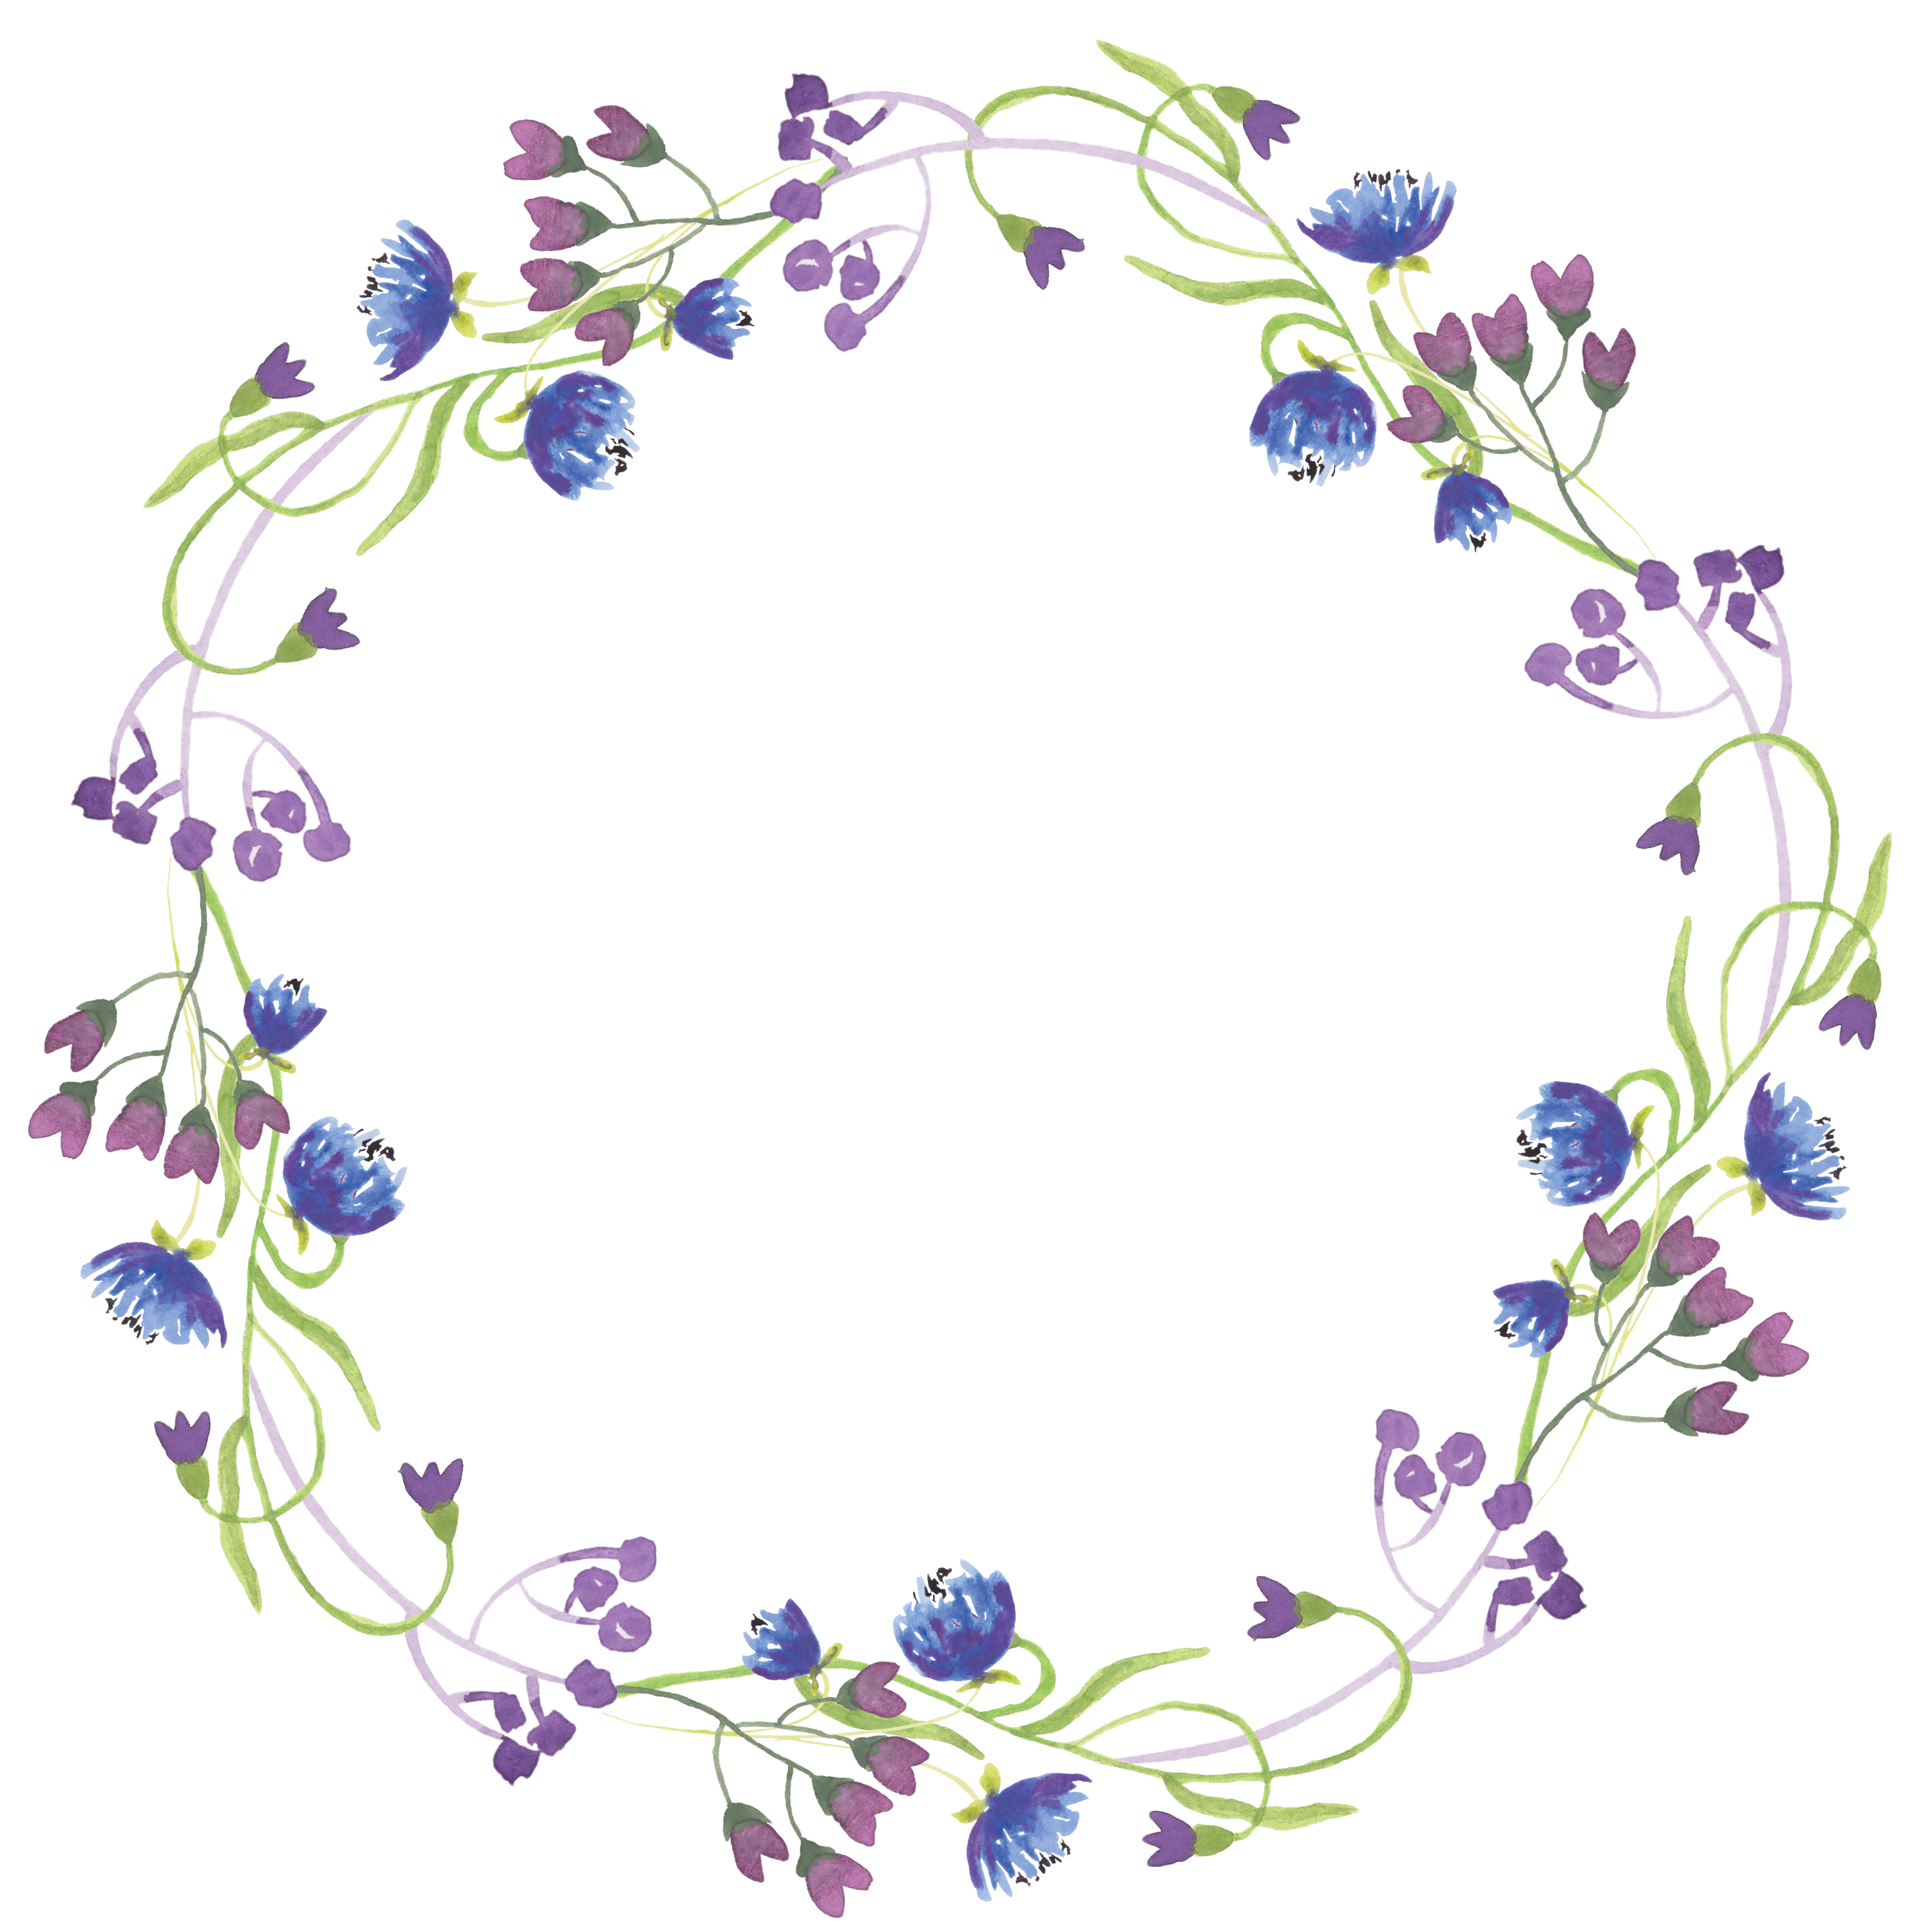 graphic freeuse library Lavender border clipart. Flower clip art round